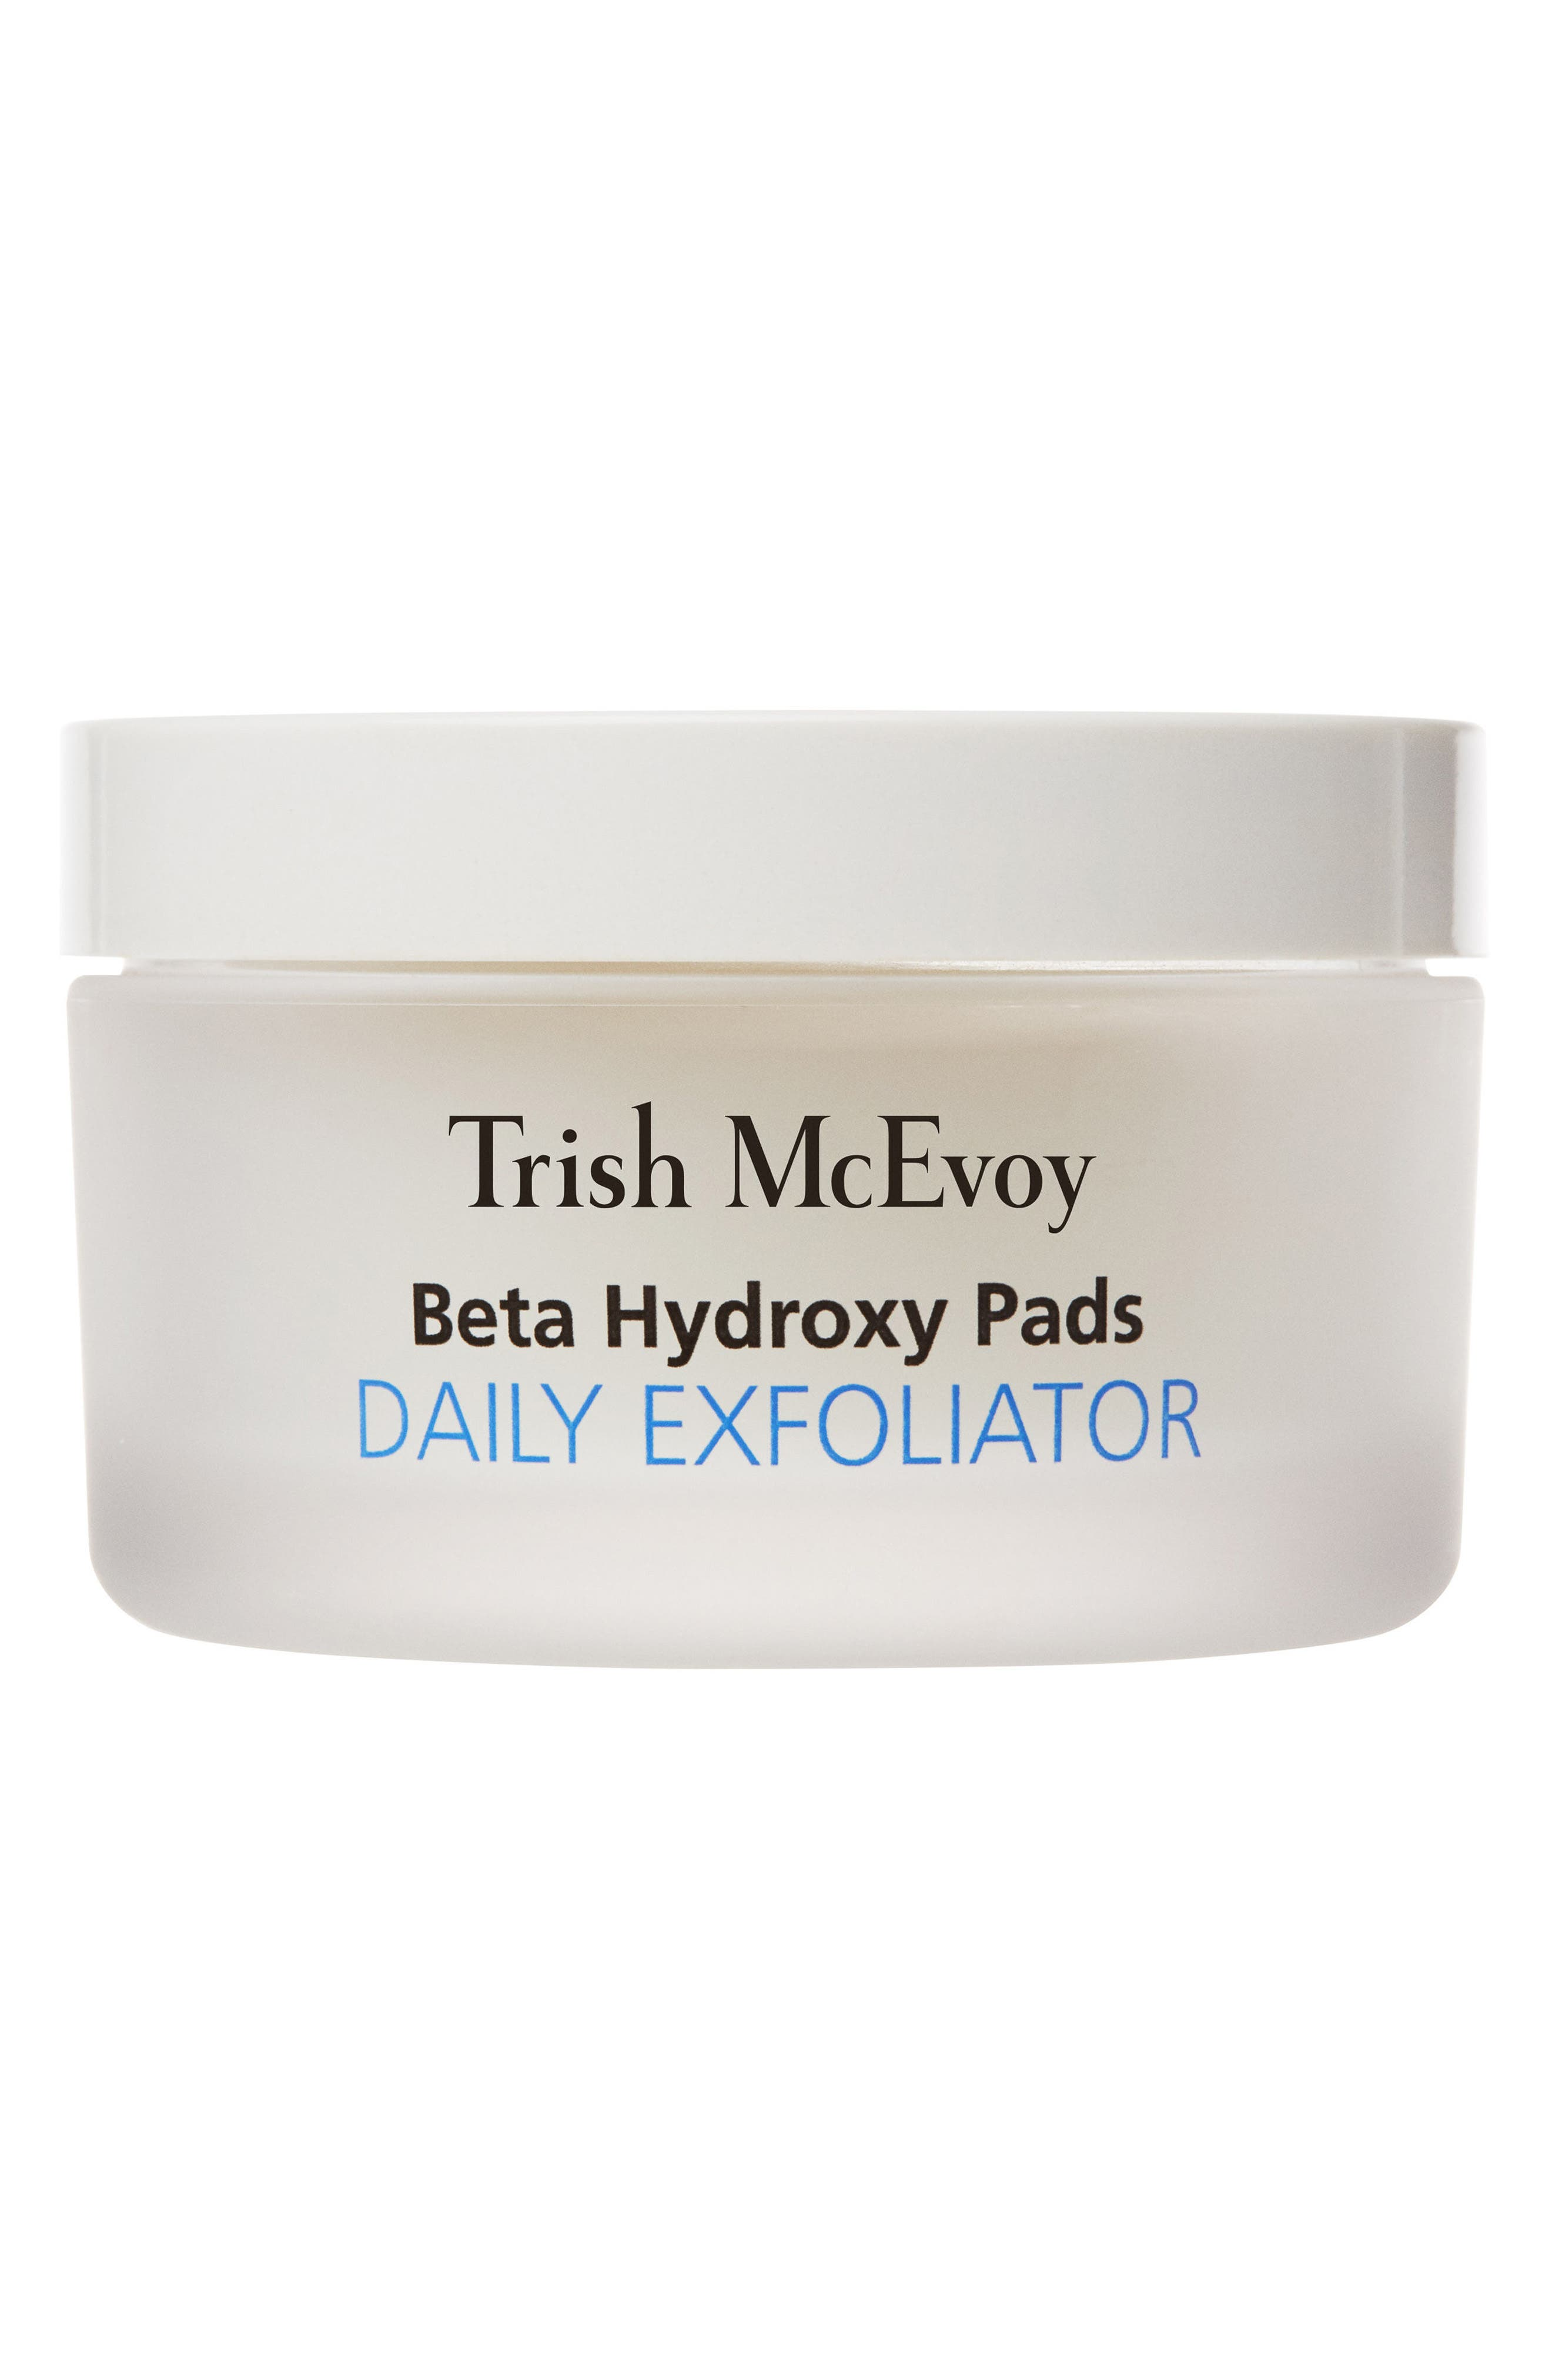 Trish McEvoy 'Even Skin' Beta Hydroxy Pads